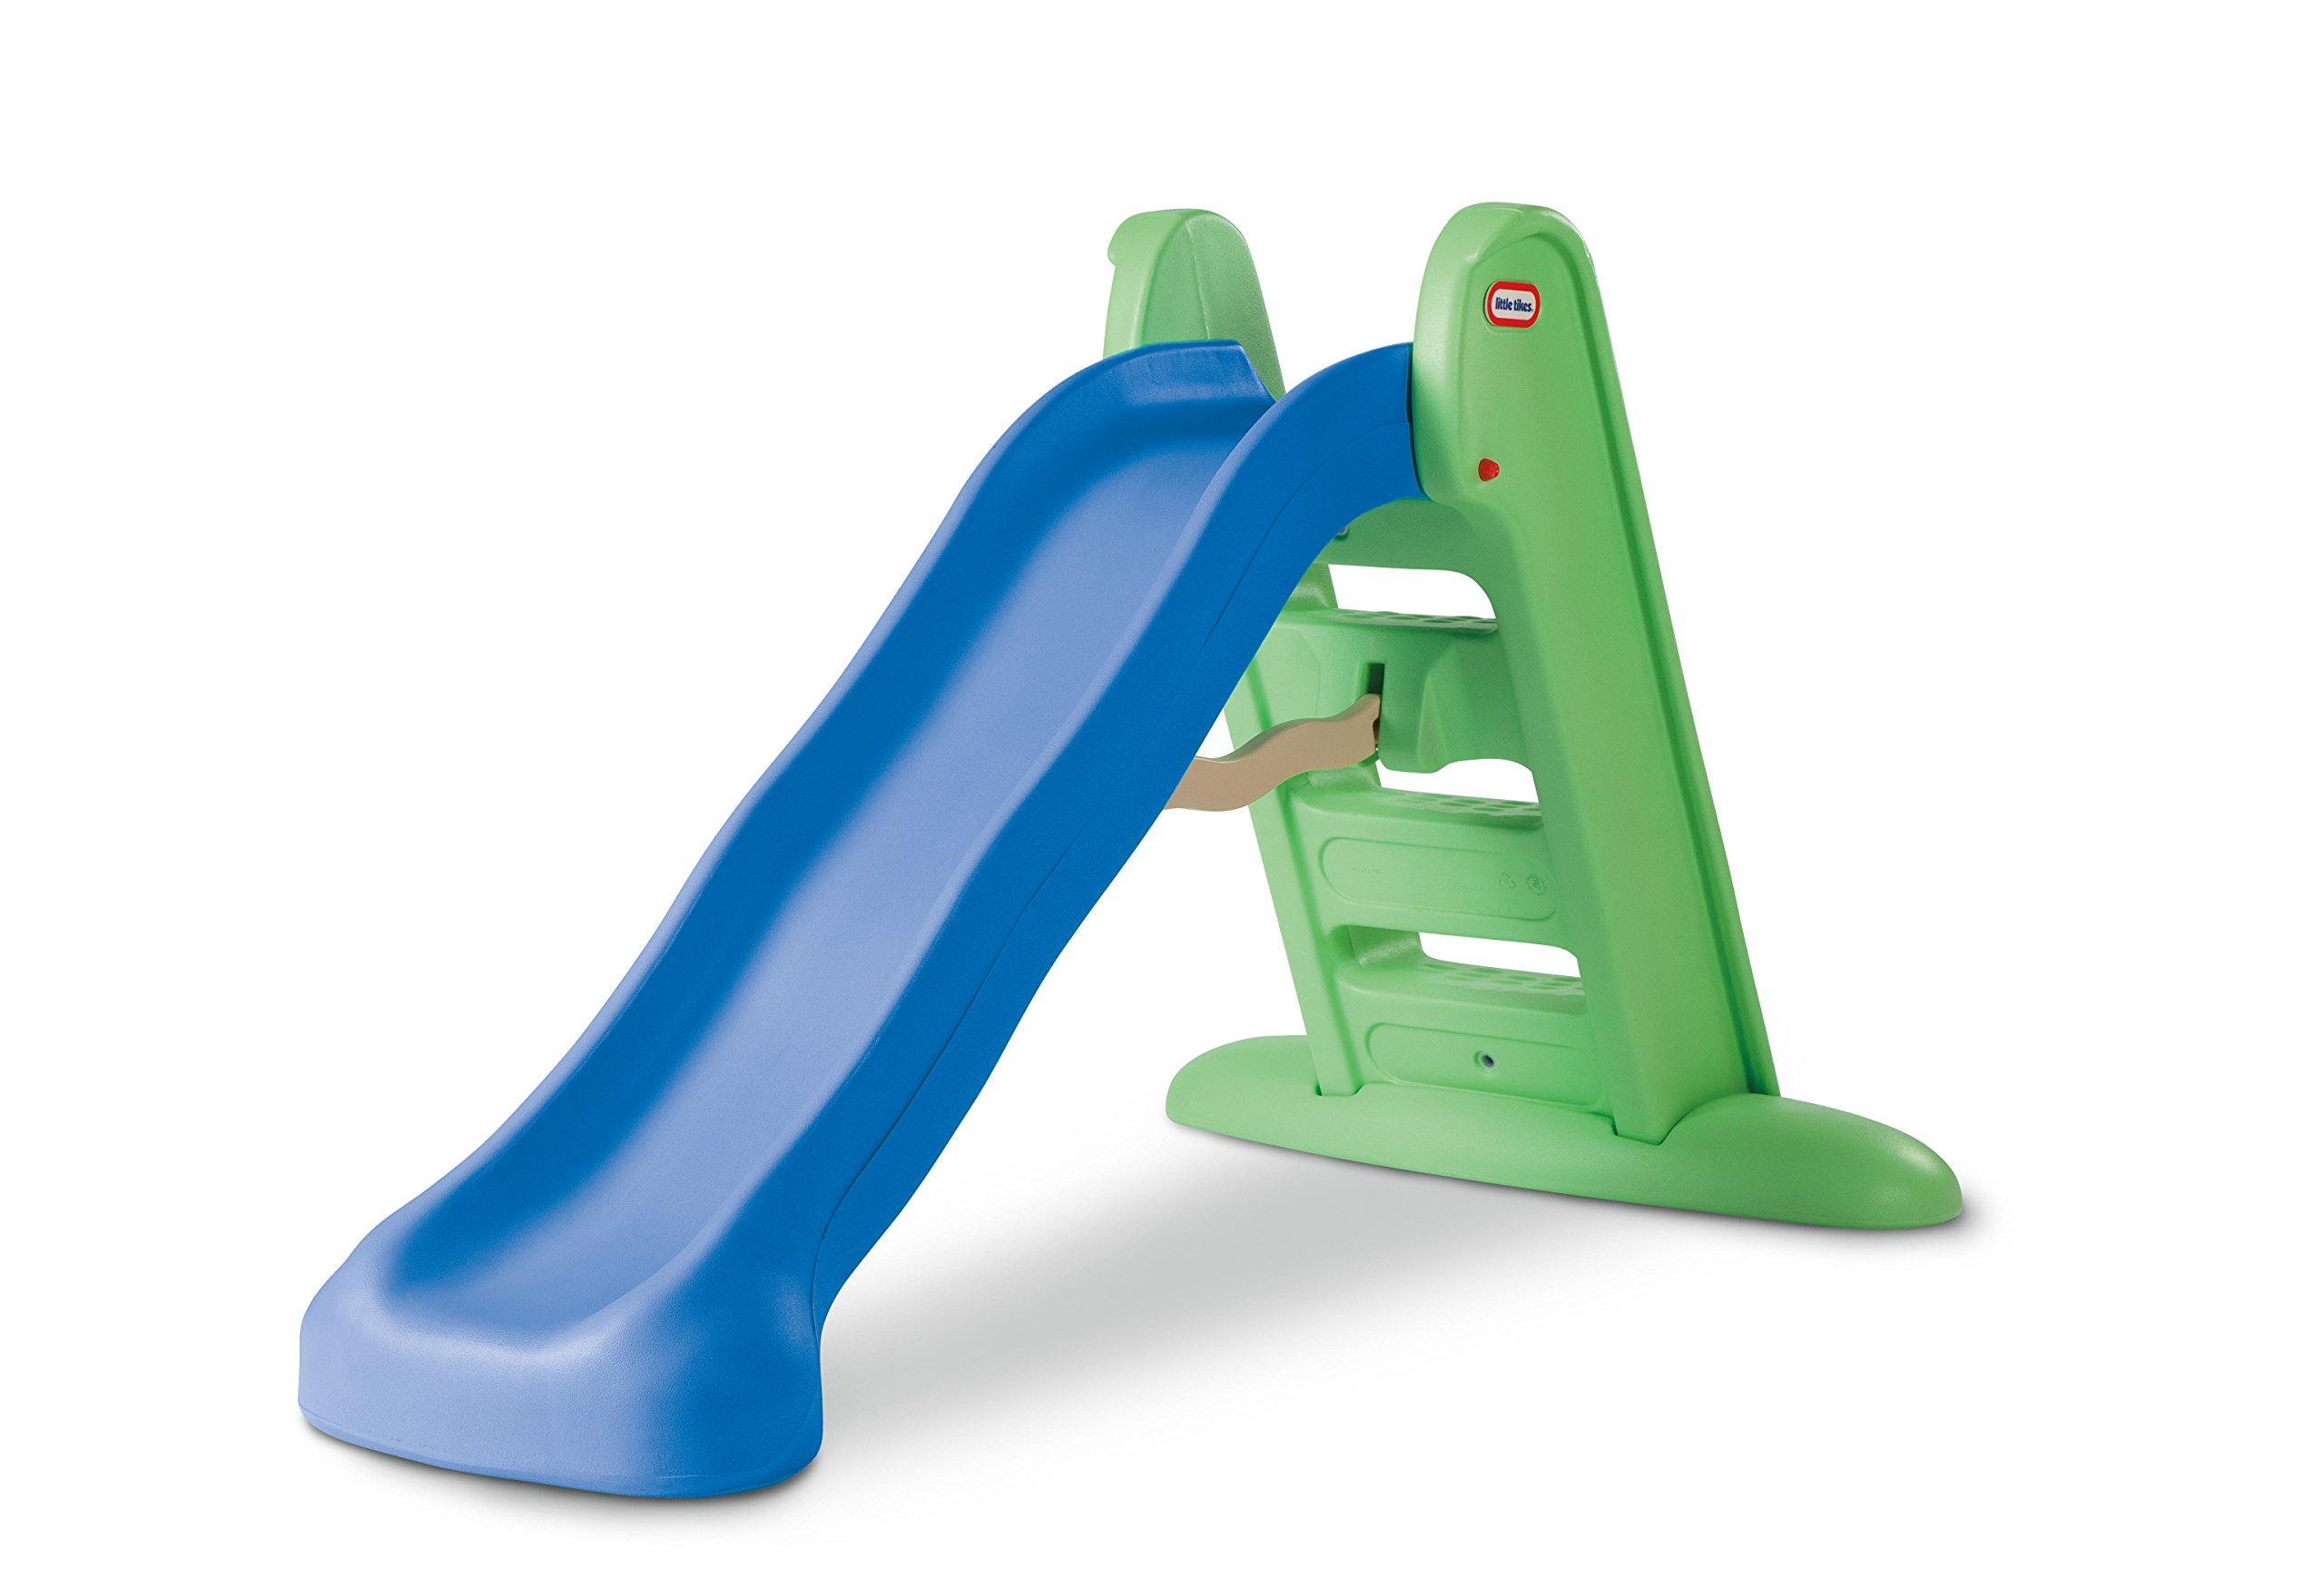 Toddler Slide Large Kids Slides And Climbers Indoor Outdoor Playground Plastic Climber Toys Infant Backyard Fun Children NEW